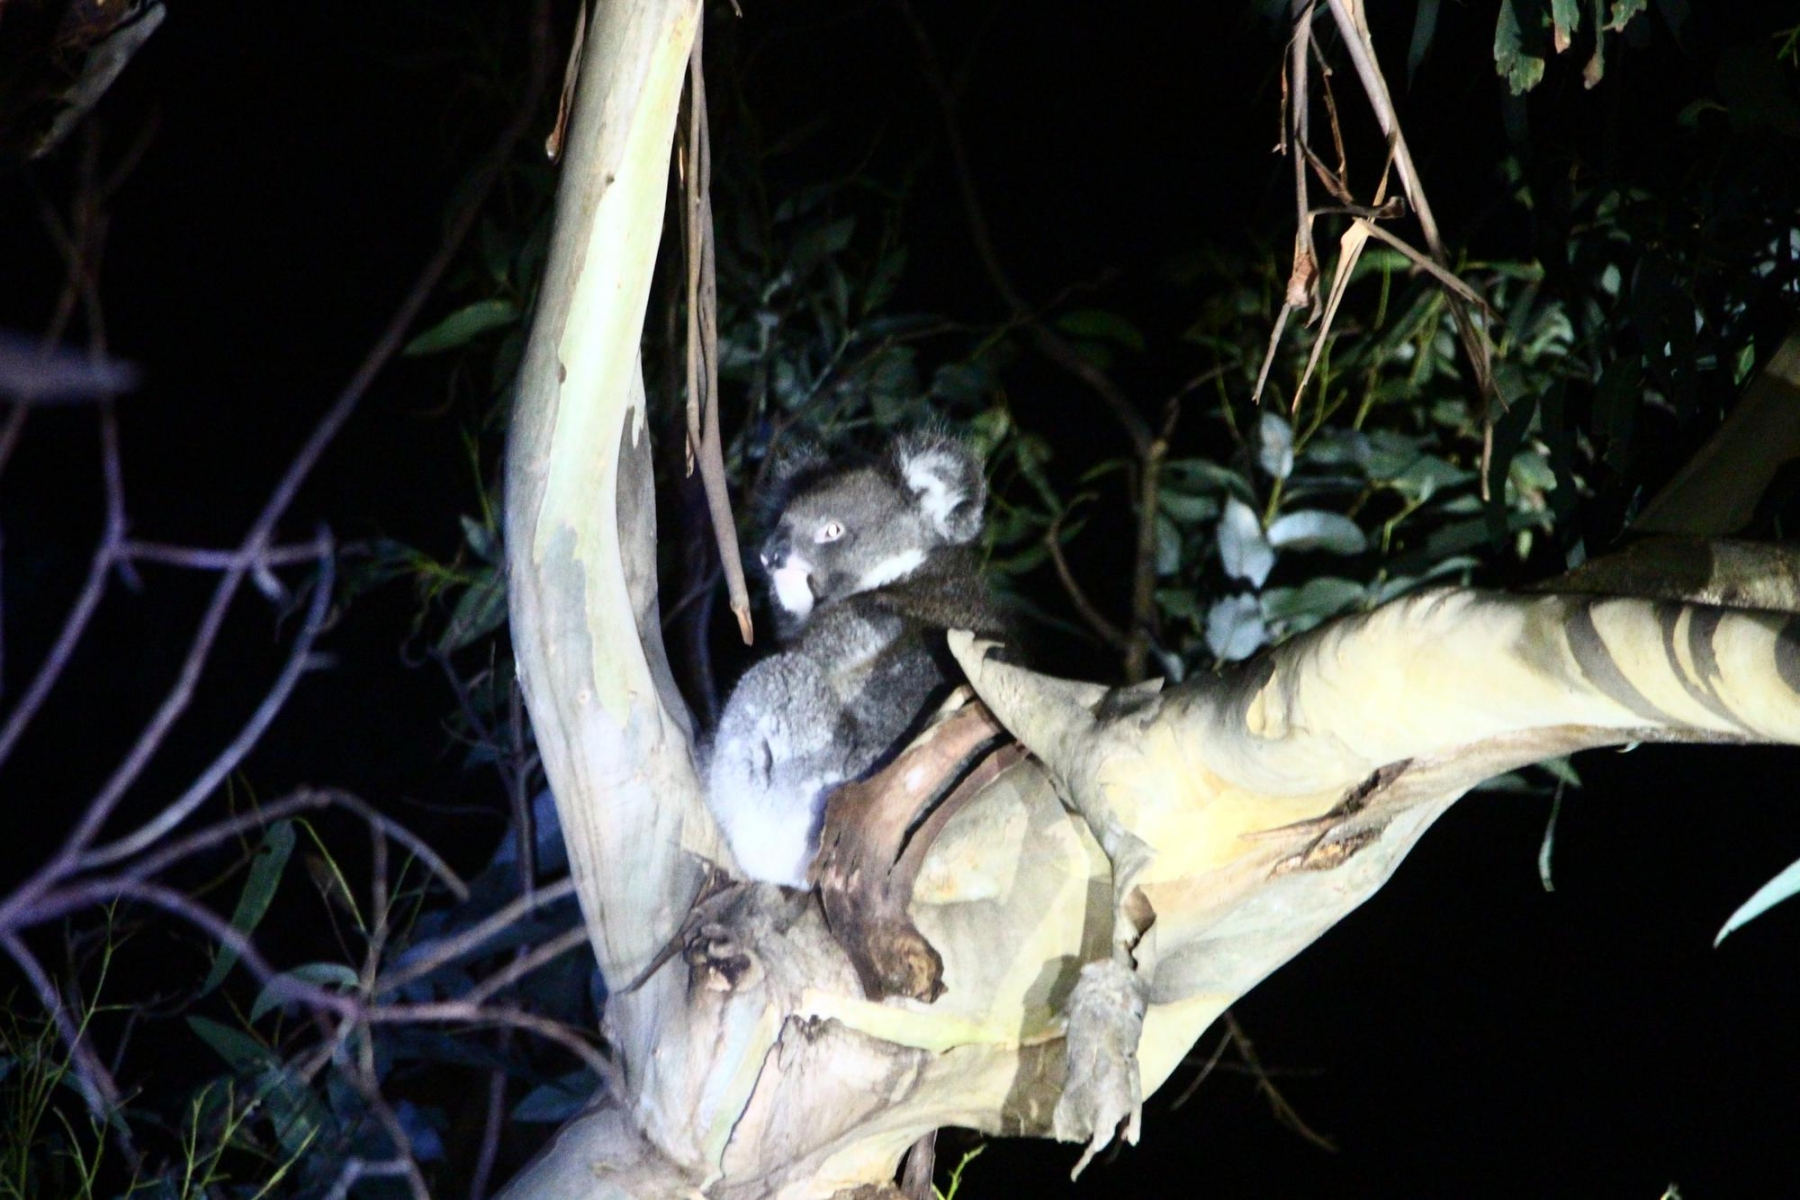 A koala is spotted on its way back from the pub.